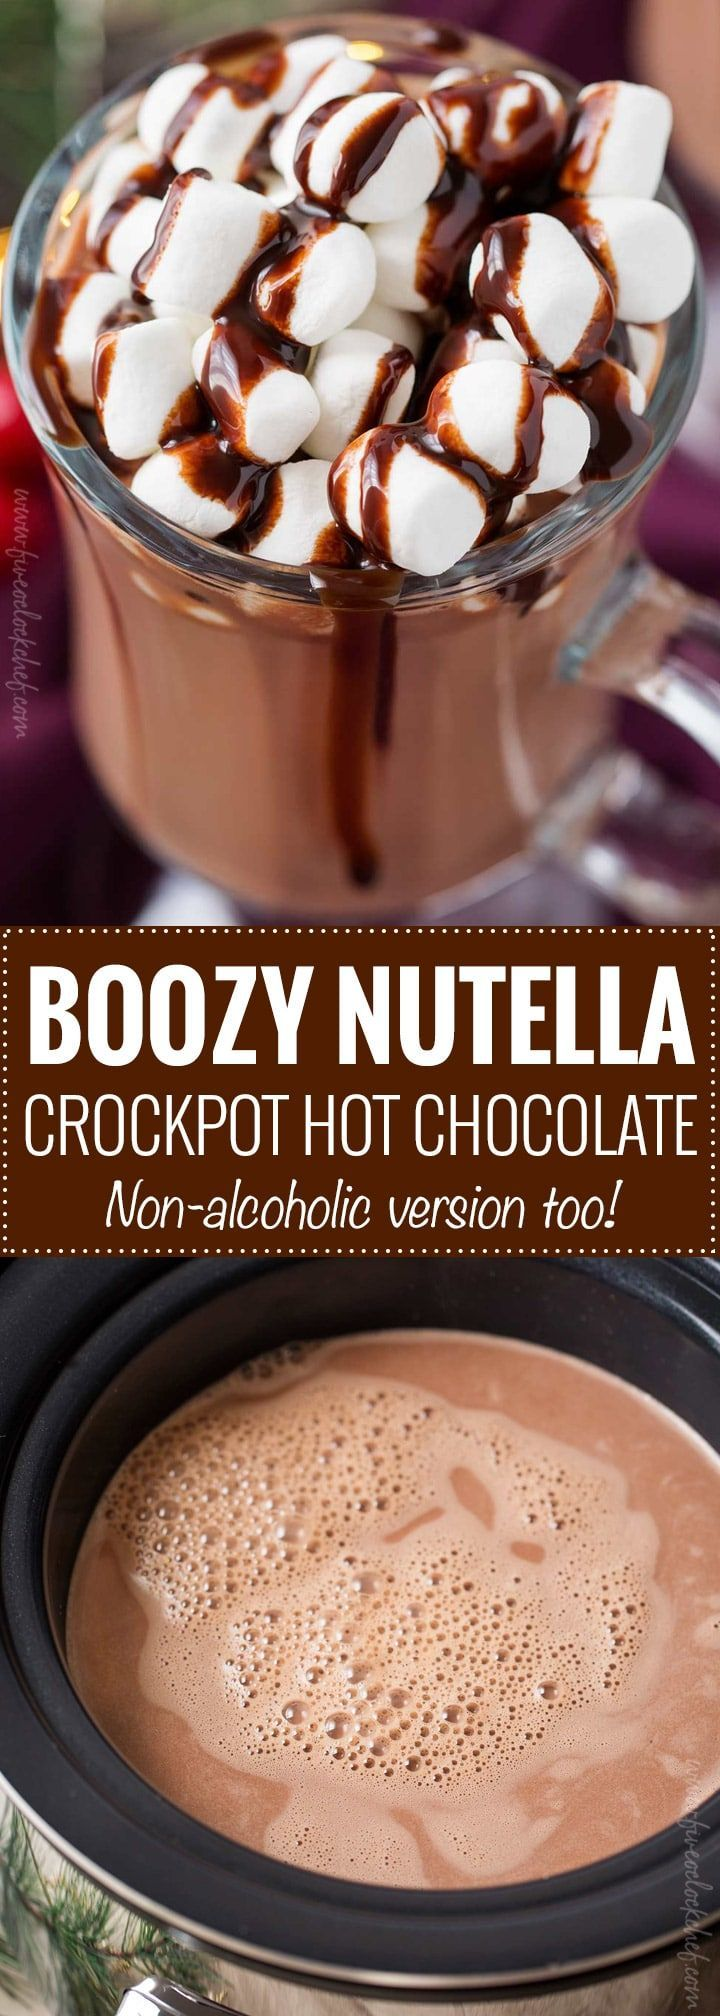 Boozy Nutella Crockpot Hot Chocolate | This holiday season, make hot chocolate for the whole party, right in your slow cooker! This hot chocolate is made with plenty of nutella for a creamy hazelnut version that's absolutely amazing! To make it boozy, add a splash of your favorite alcohol!